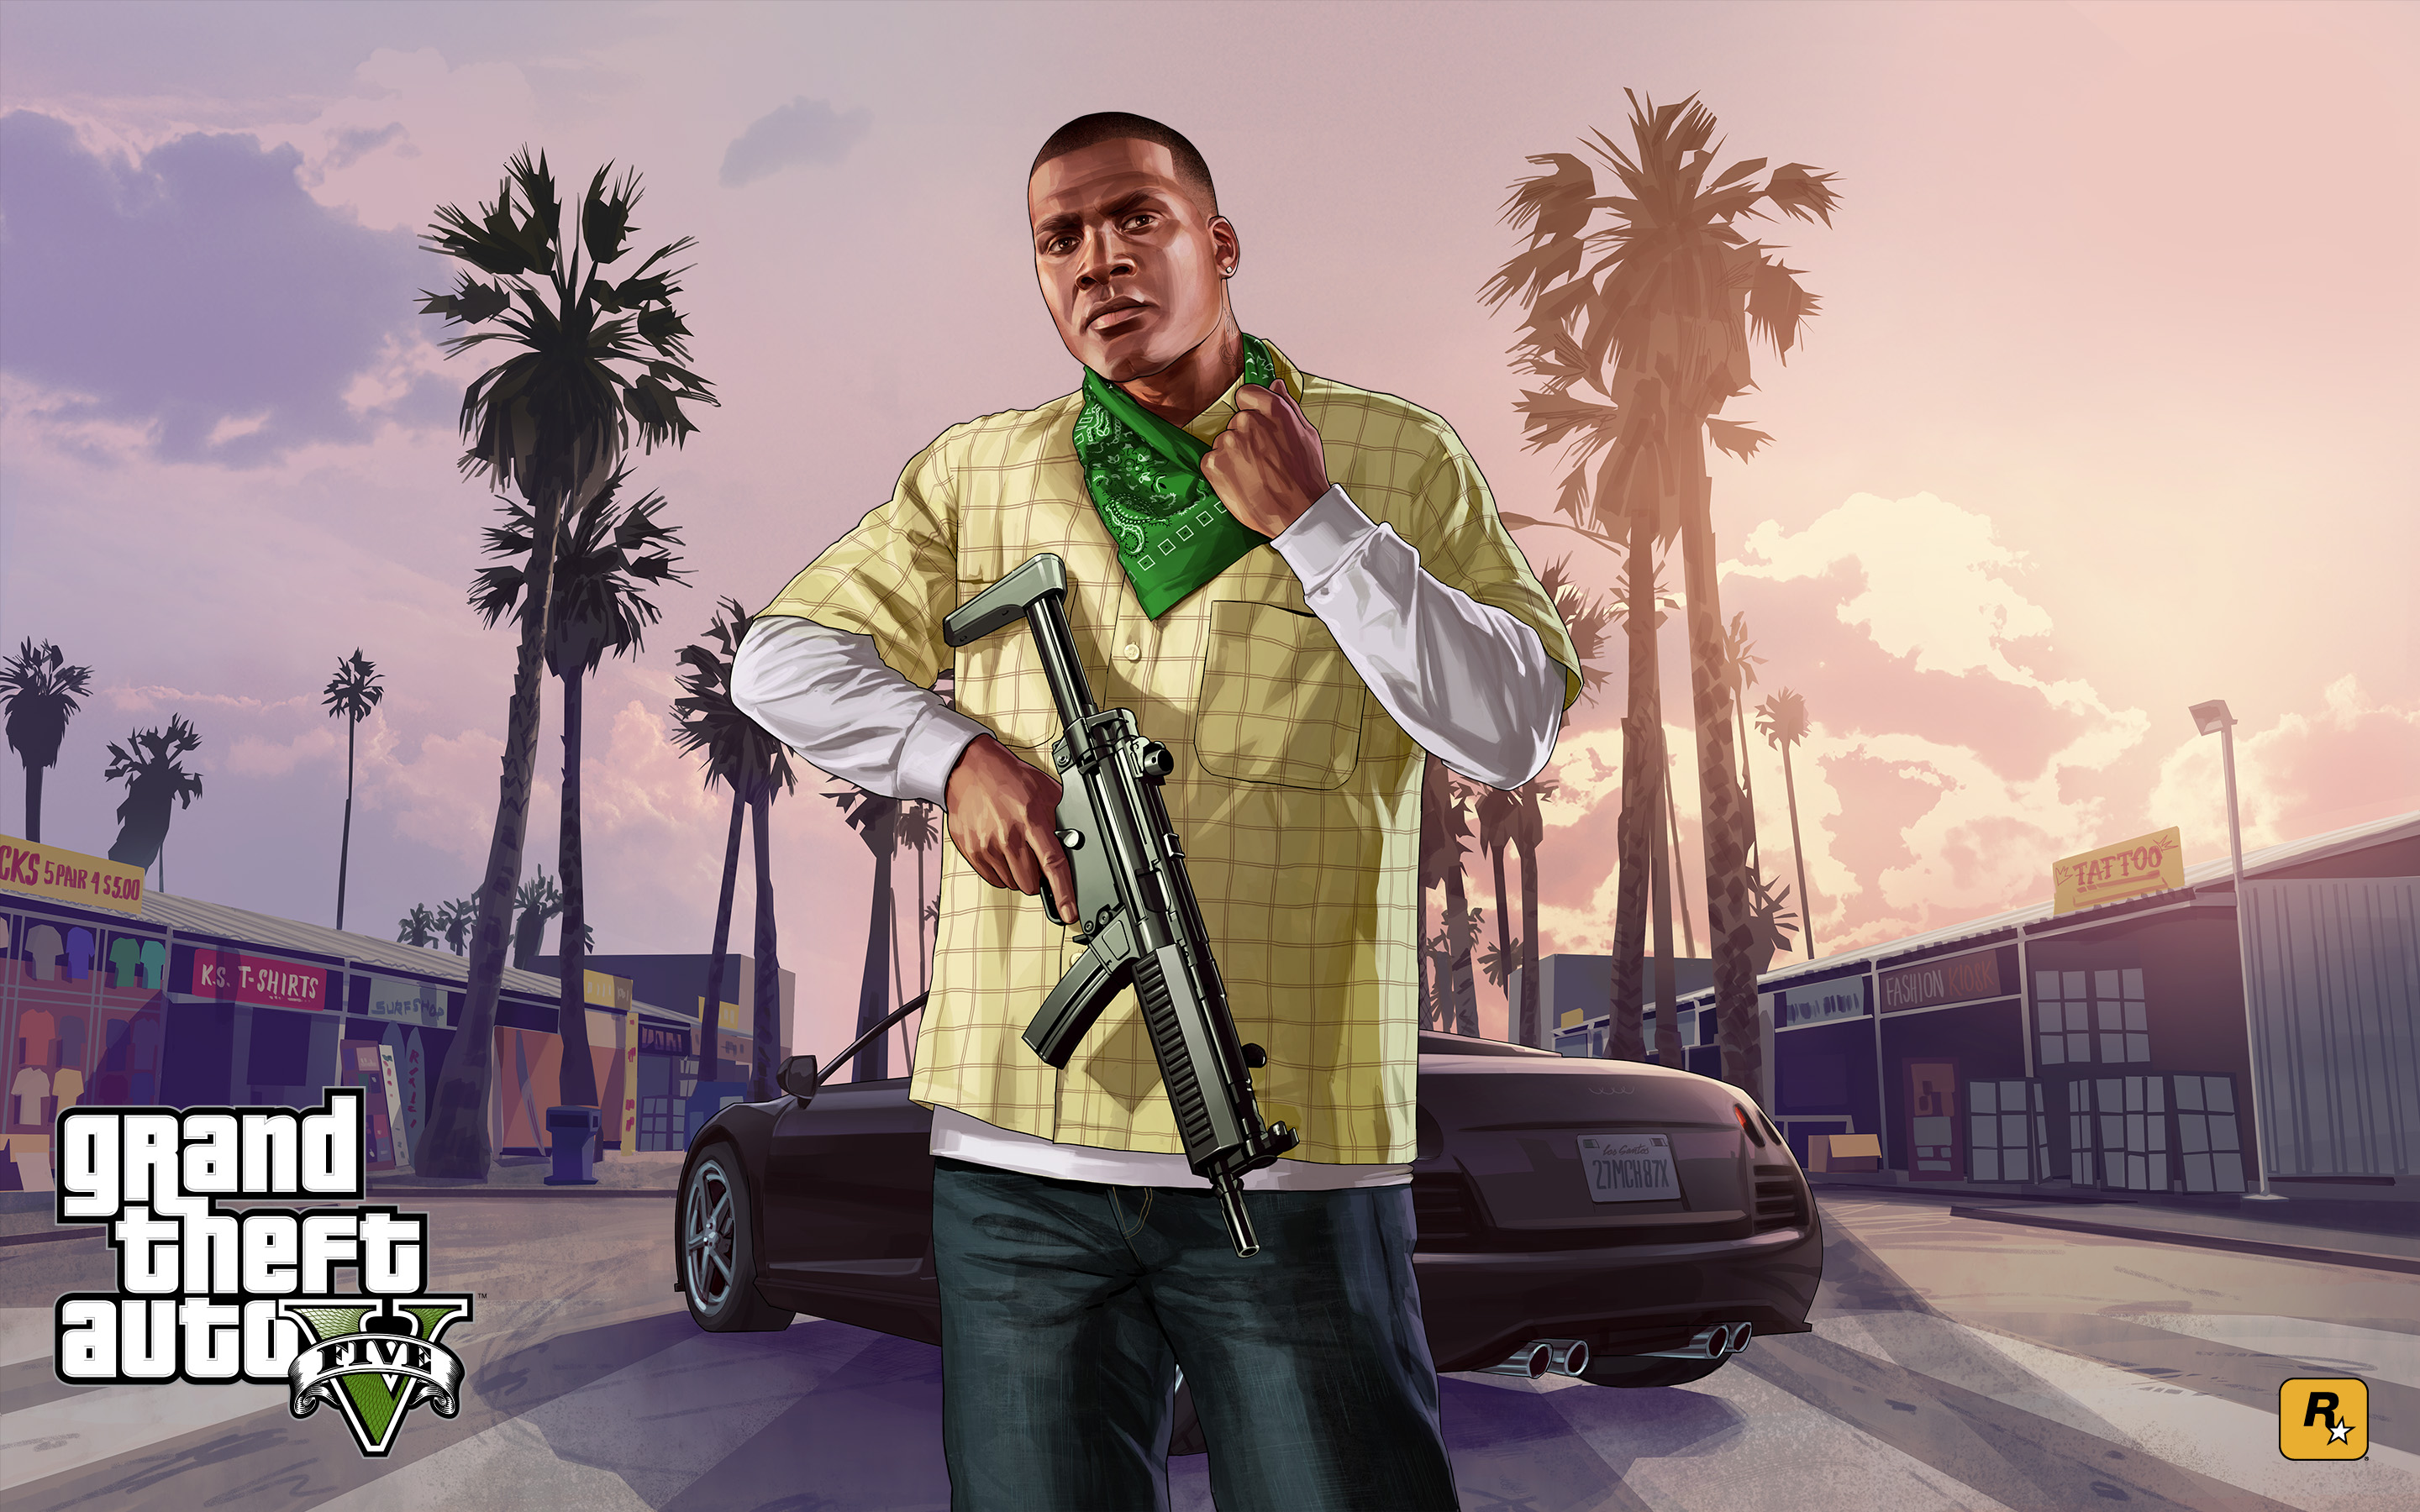 Widescreen Gaming Gta 5 1613 Wallpaper Franklin Families Grand Theft Auto Dvdbash furthermore projects as well Watch in addition 10364944495 moreover Sunday Inspirational Image Tavern. on castle interiors